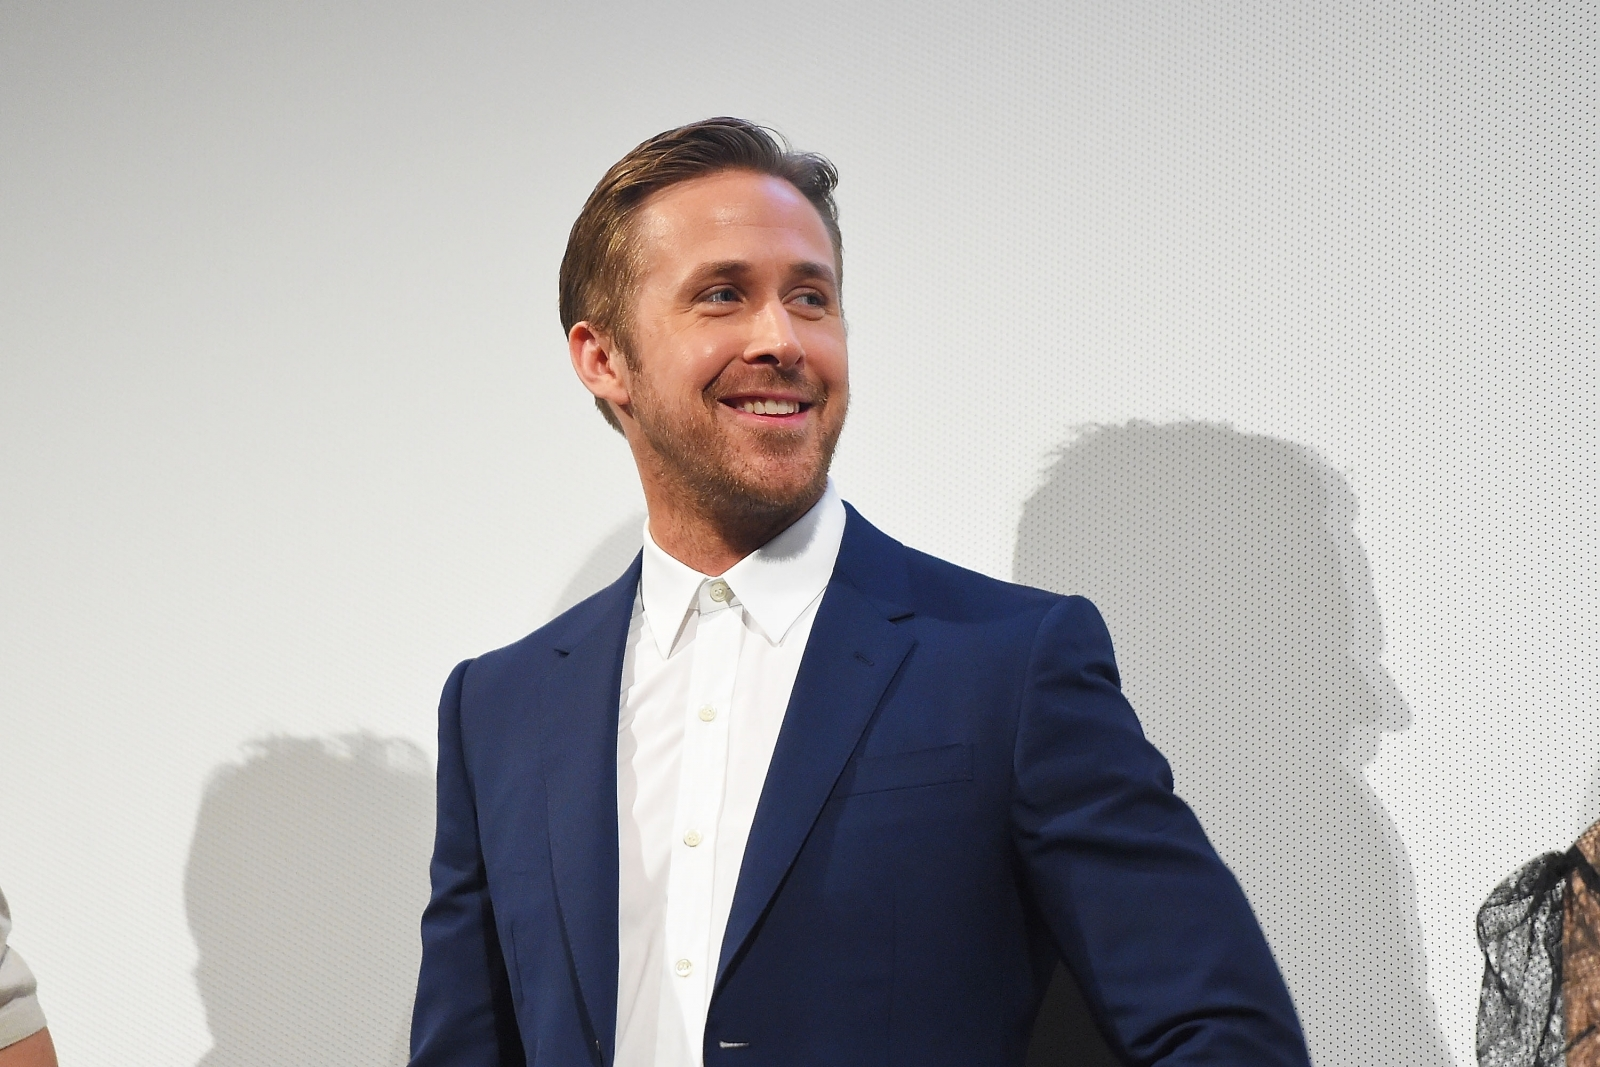 Ryan Gosling reacts to making Harry Styles' heart race over 'handsome' topless Notebook scene